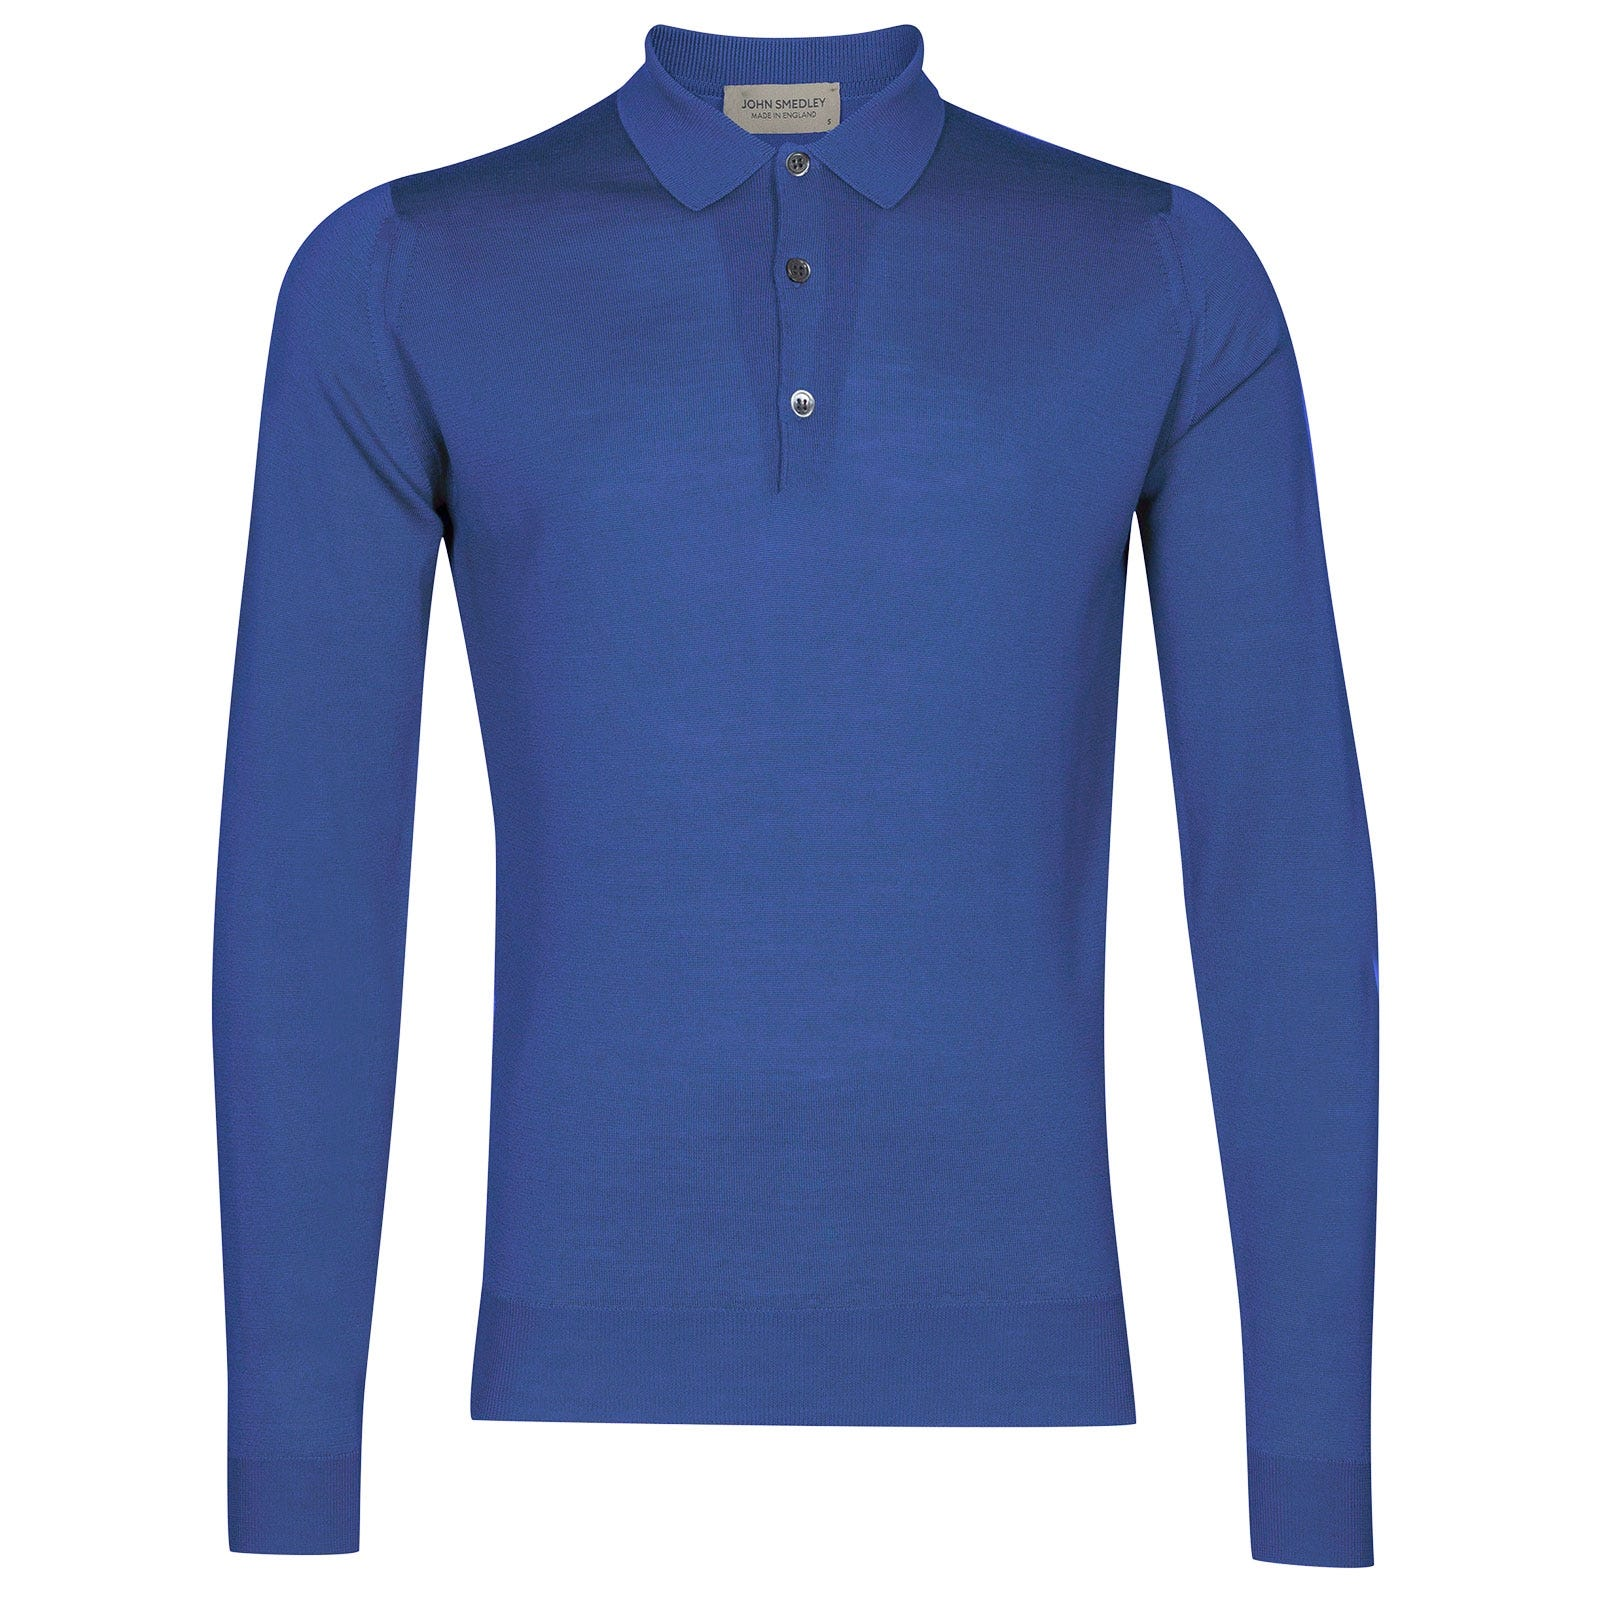 John Smedley Belper Merino Wool Shirt in Chambray Blue-XL